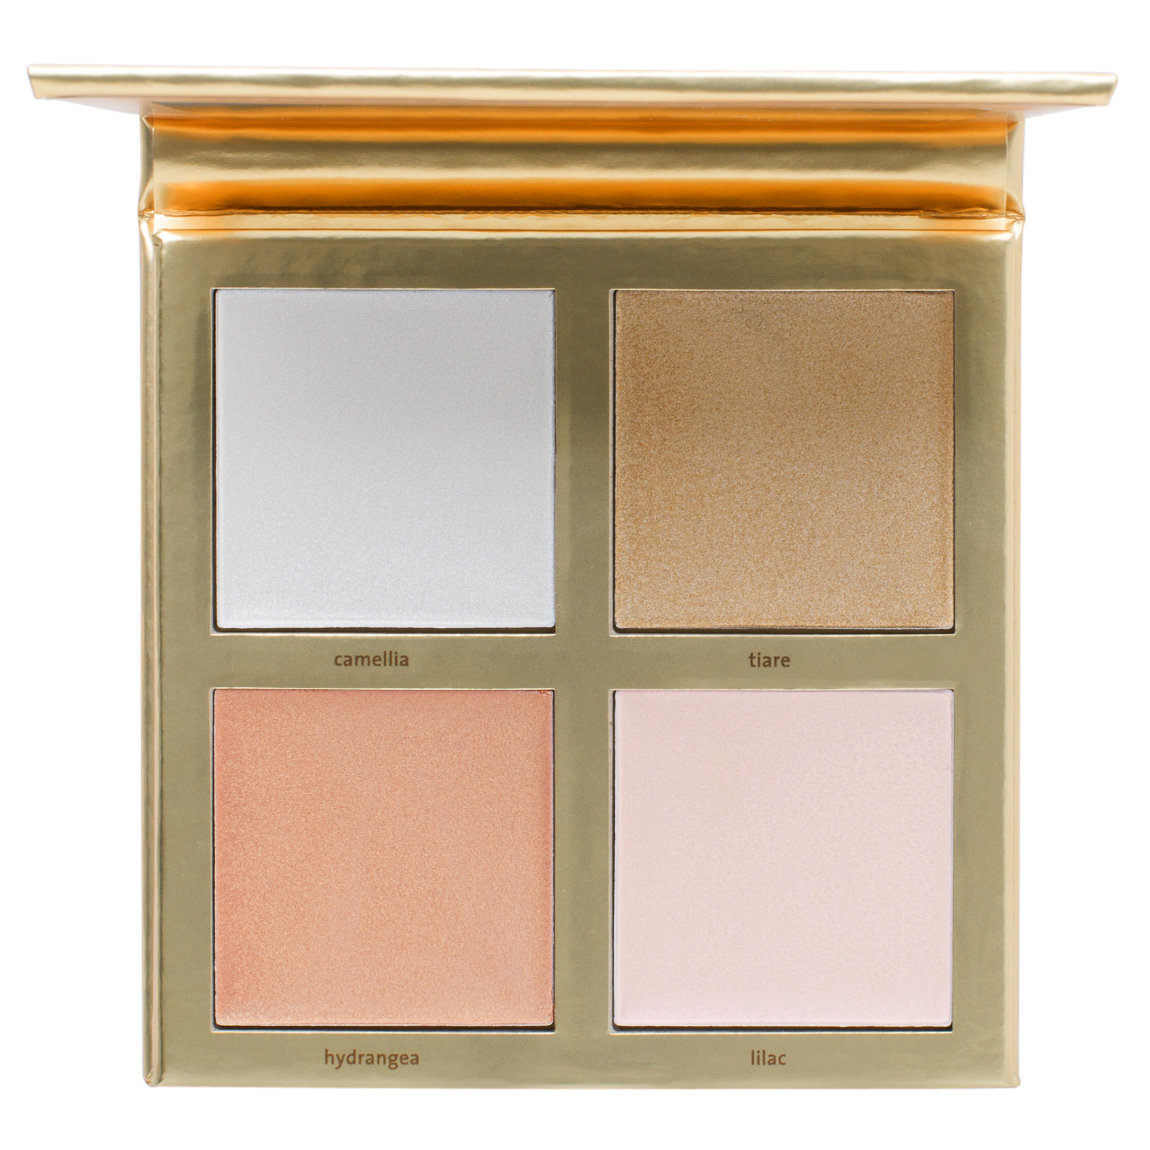 Jouer Cosmetics Lucky & Luminous Creme Highlighter Palette product smear.